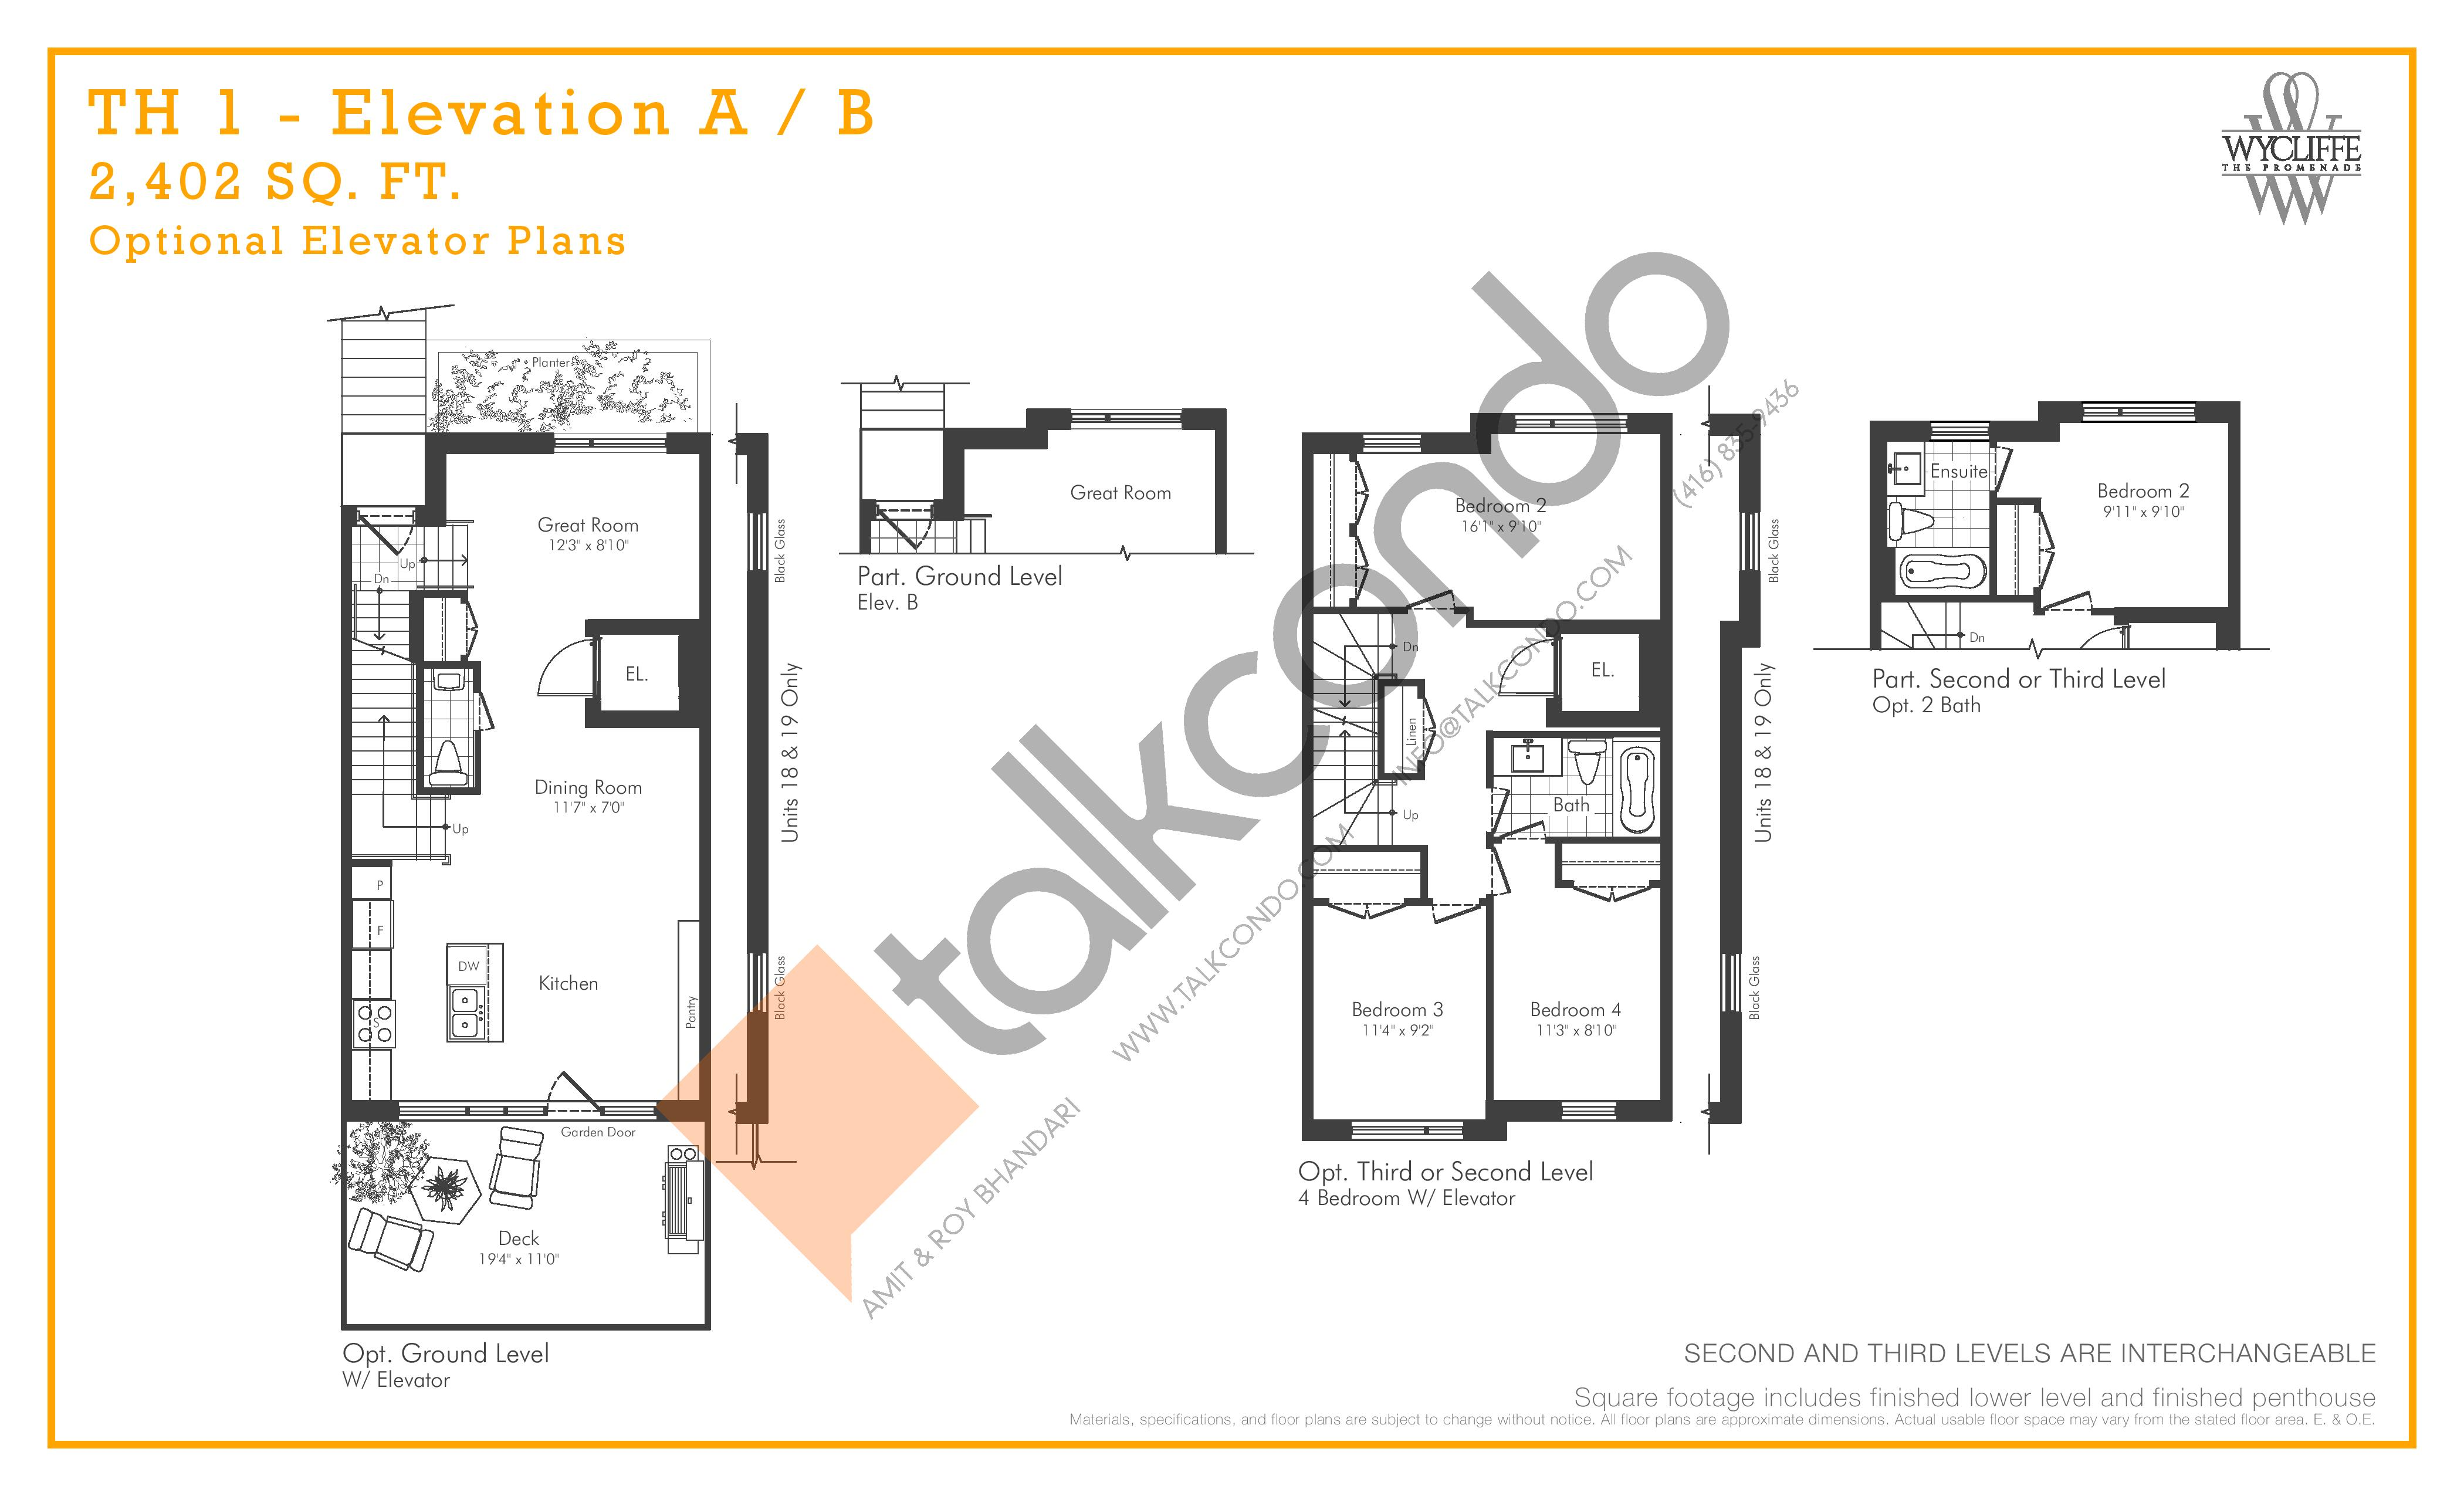 TH 1 - Elevation A/B Optional Elevator Plans Floor Plan at Wycliffe at the Promenade - 2402 sq.ft